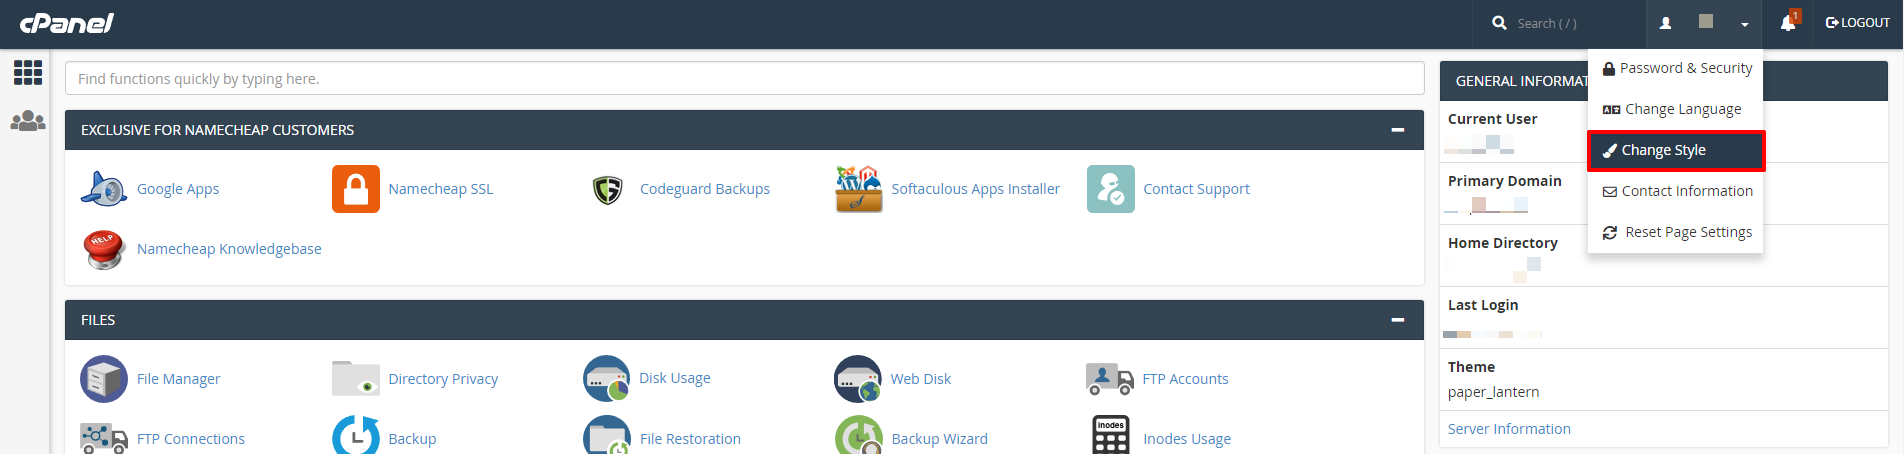 cPanel change style | HollyPryce.com